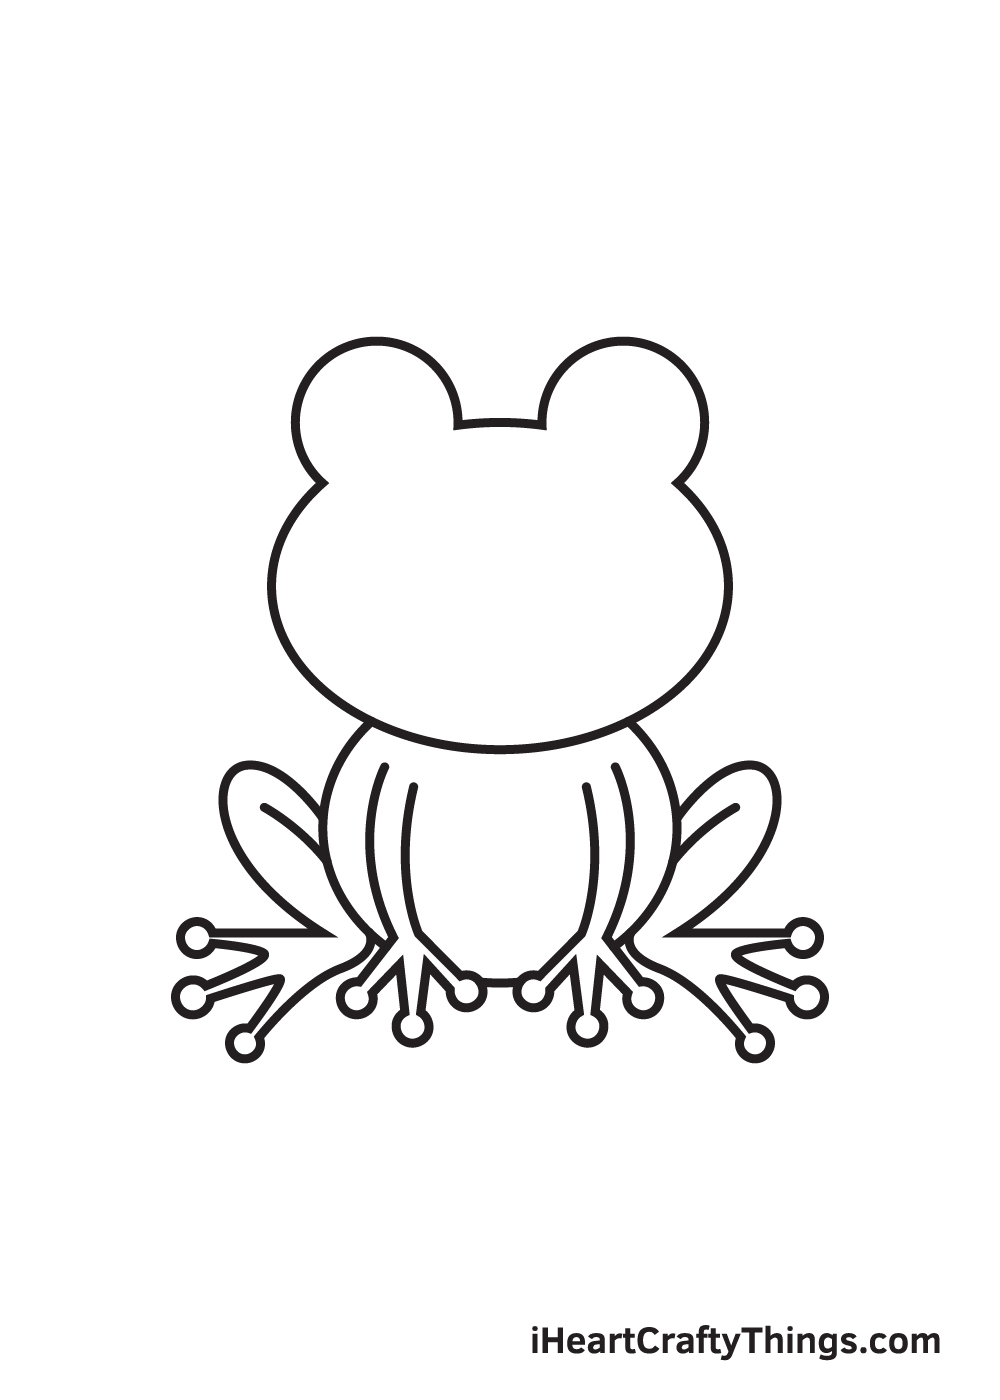 Frog Drawing – Step 6